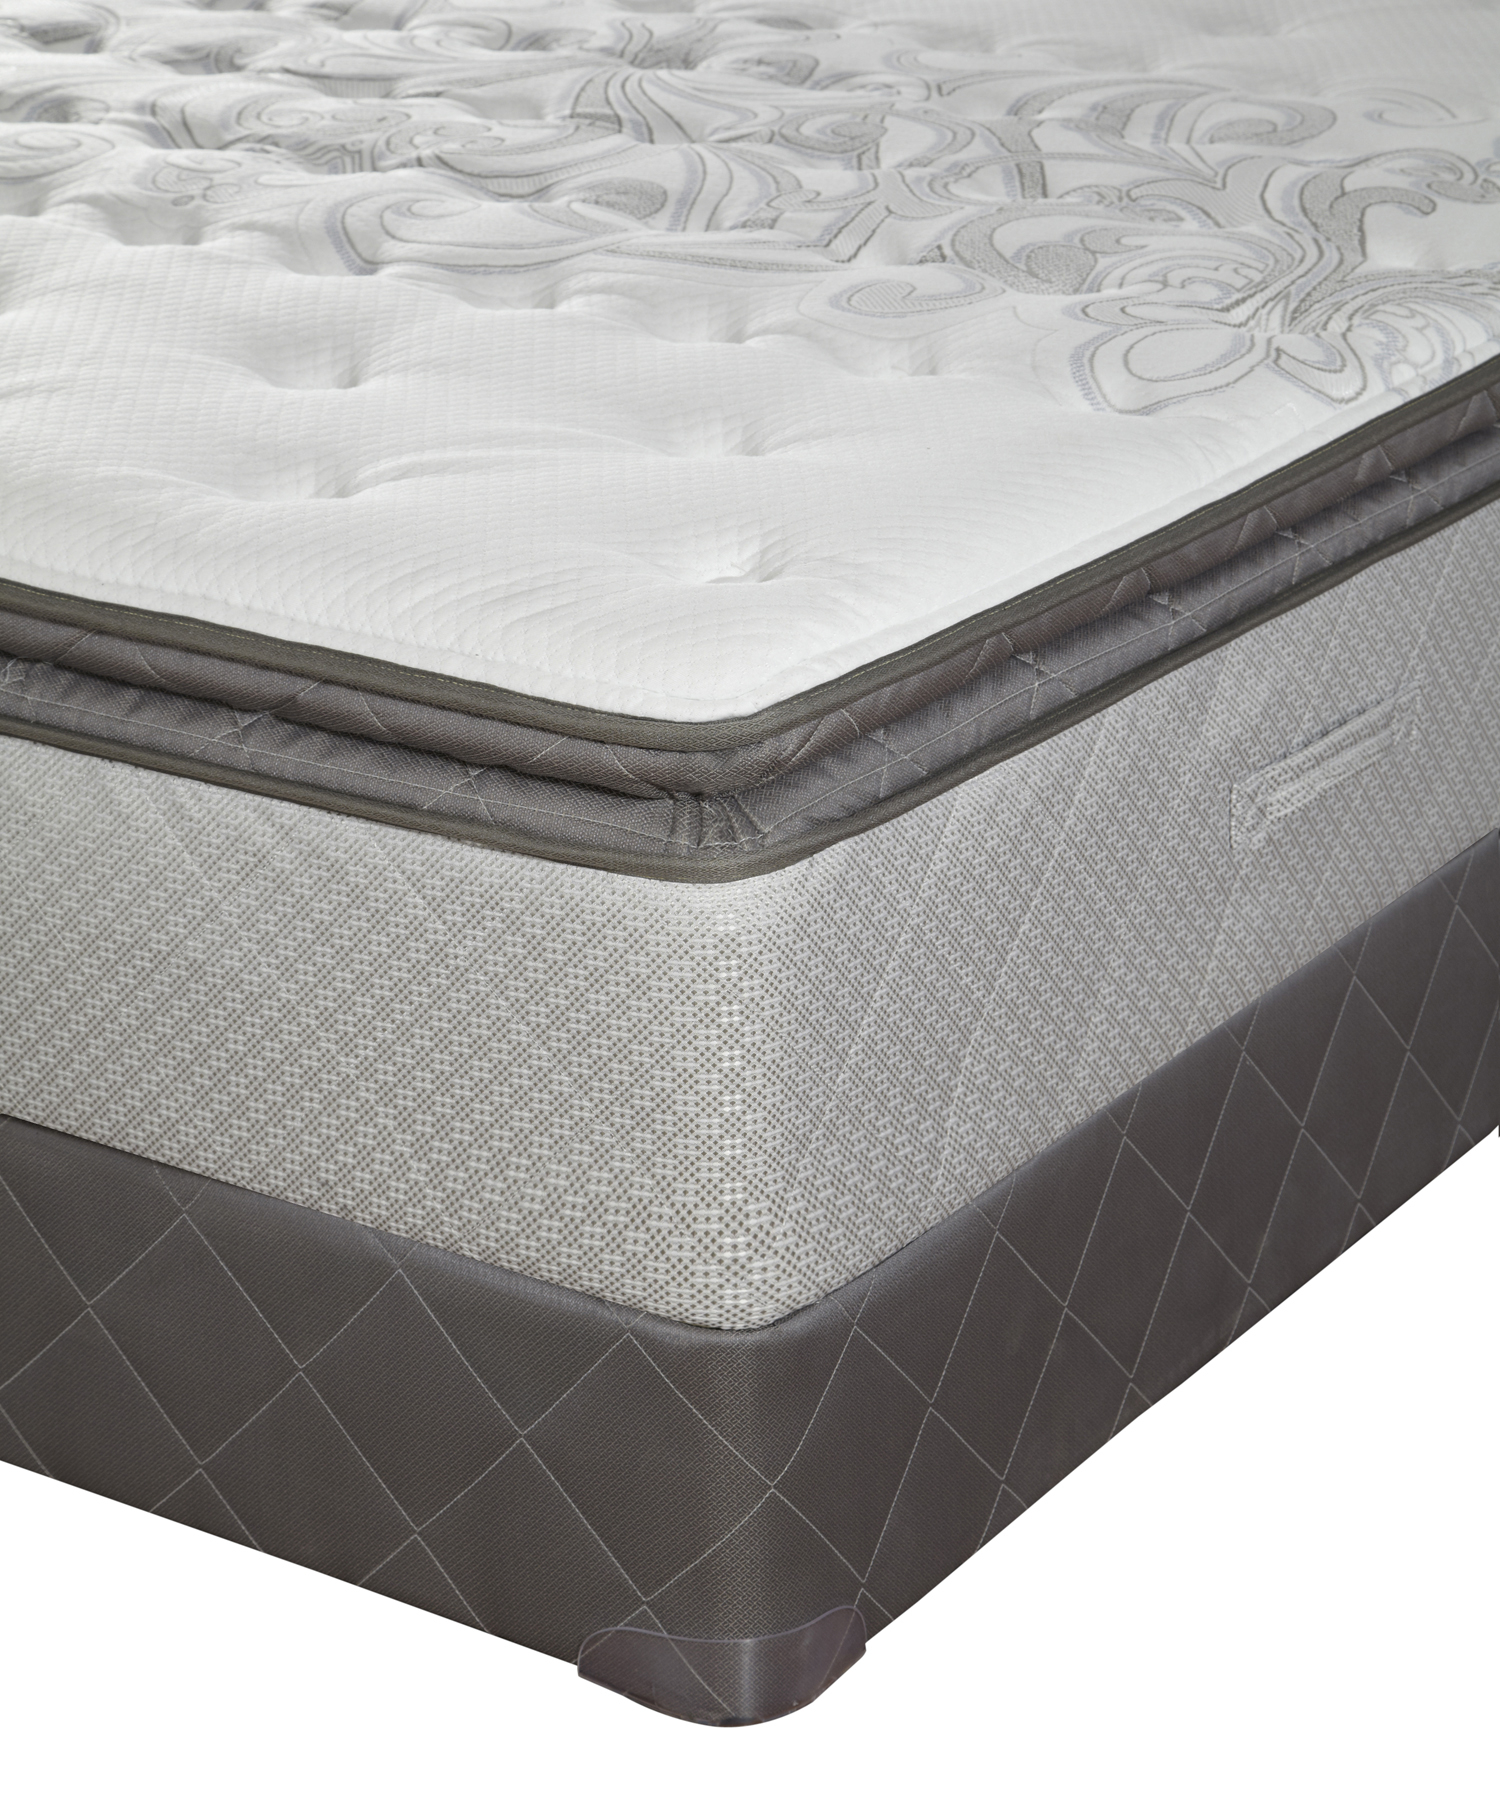 Mattress For Less In Newington Ct 06111